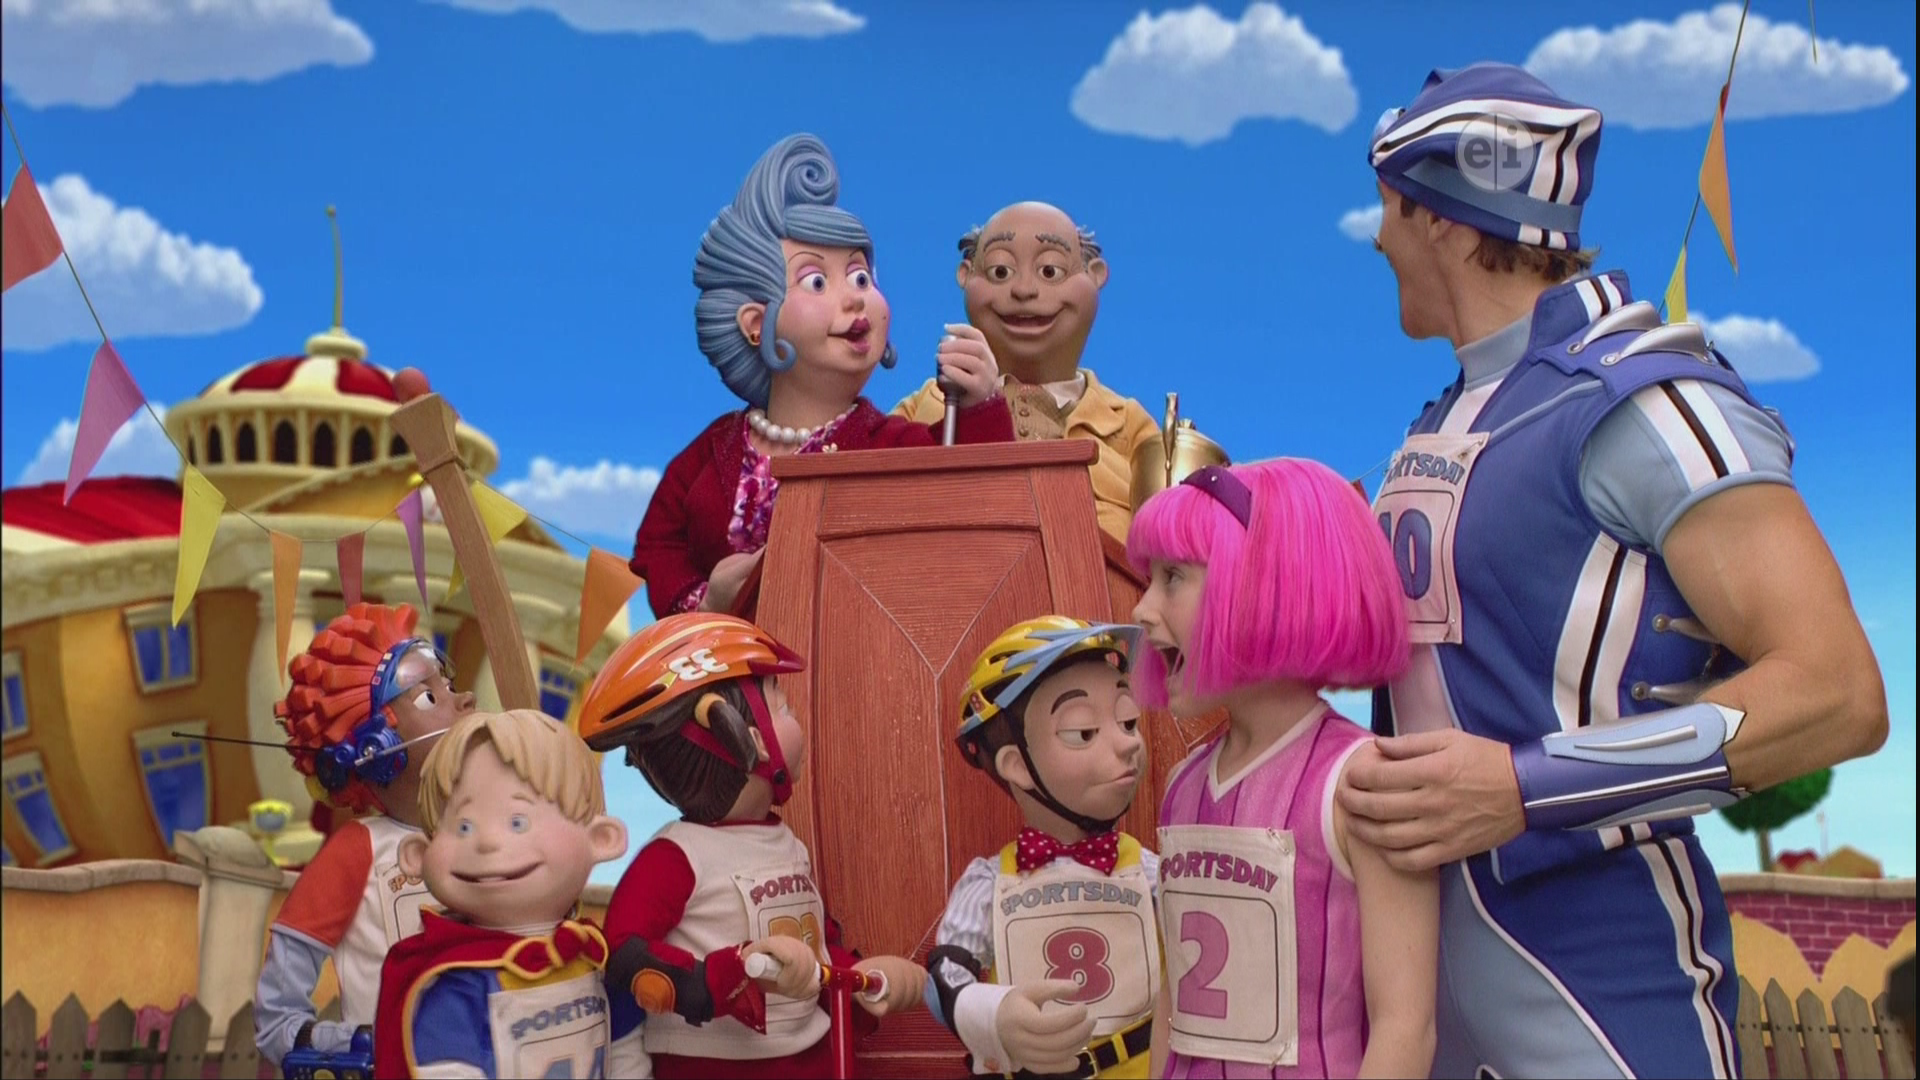 Lazy town sports day 900 x 675 103 kb jpeg lazy town stephanie 1024